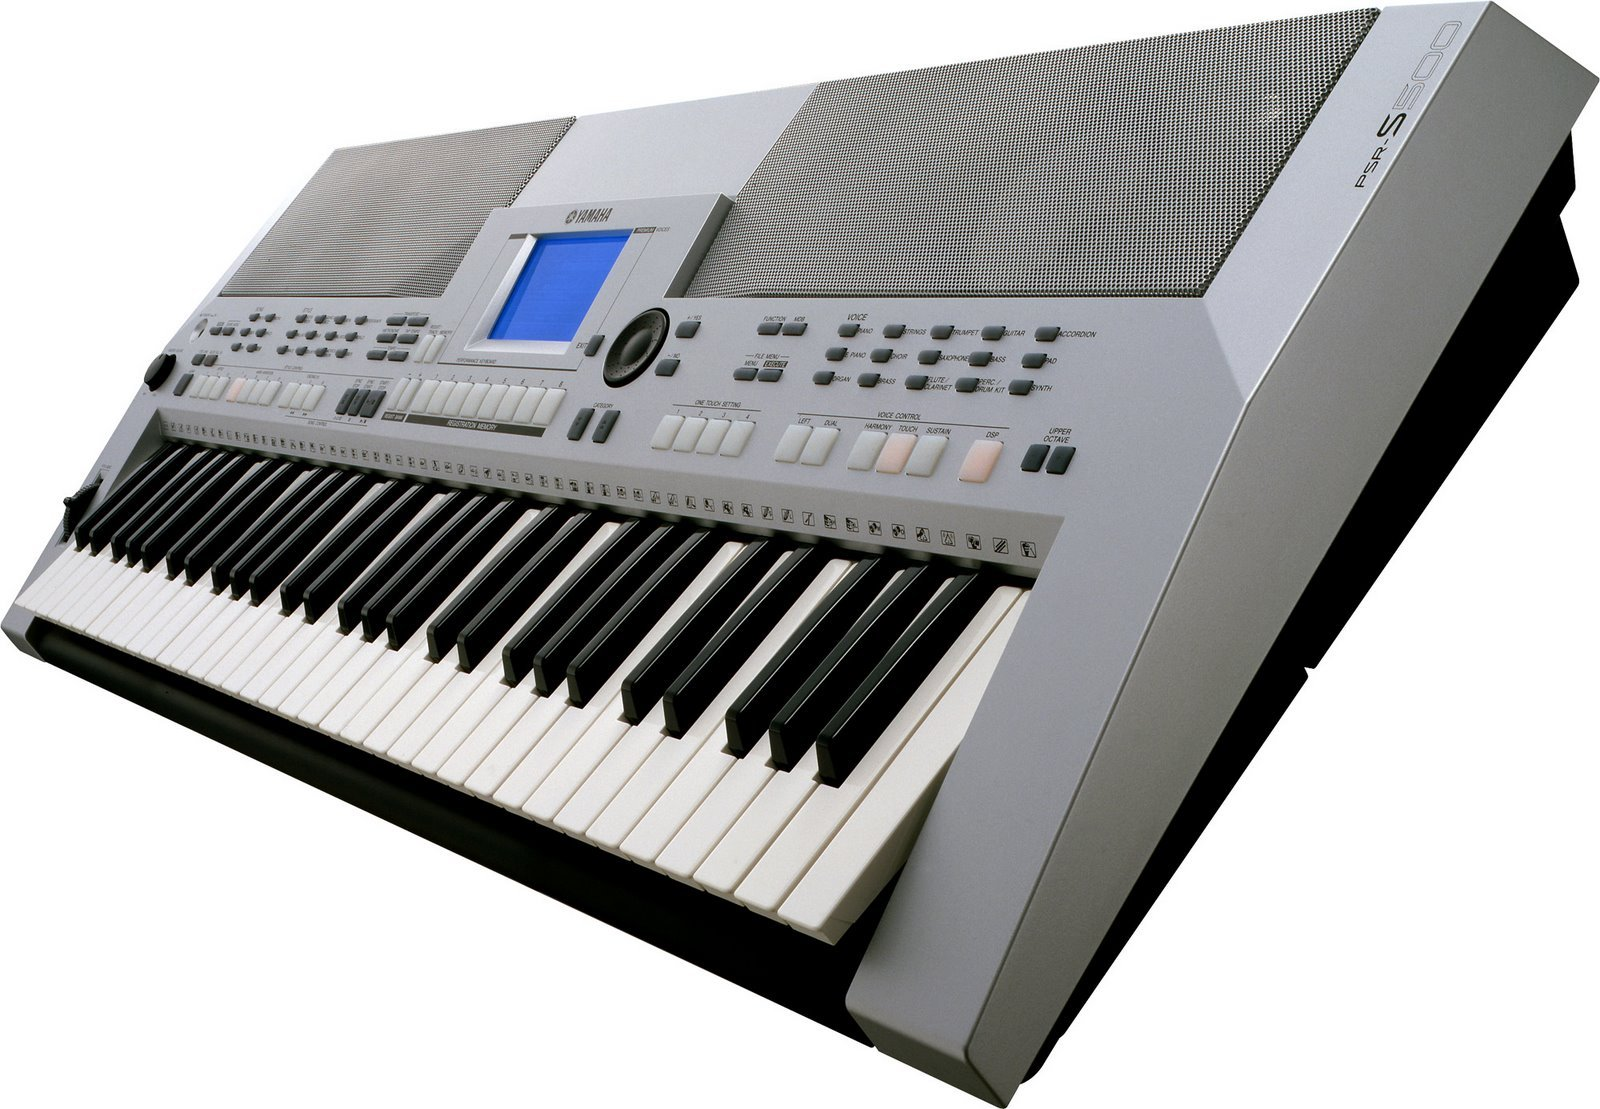 Yamaha psr s500 image 146713 audiofanzine for Yamaha professional keyboard price